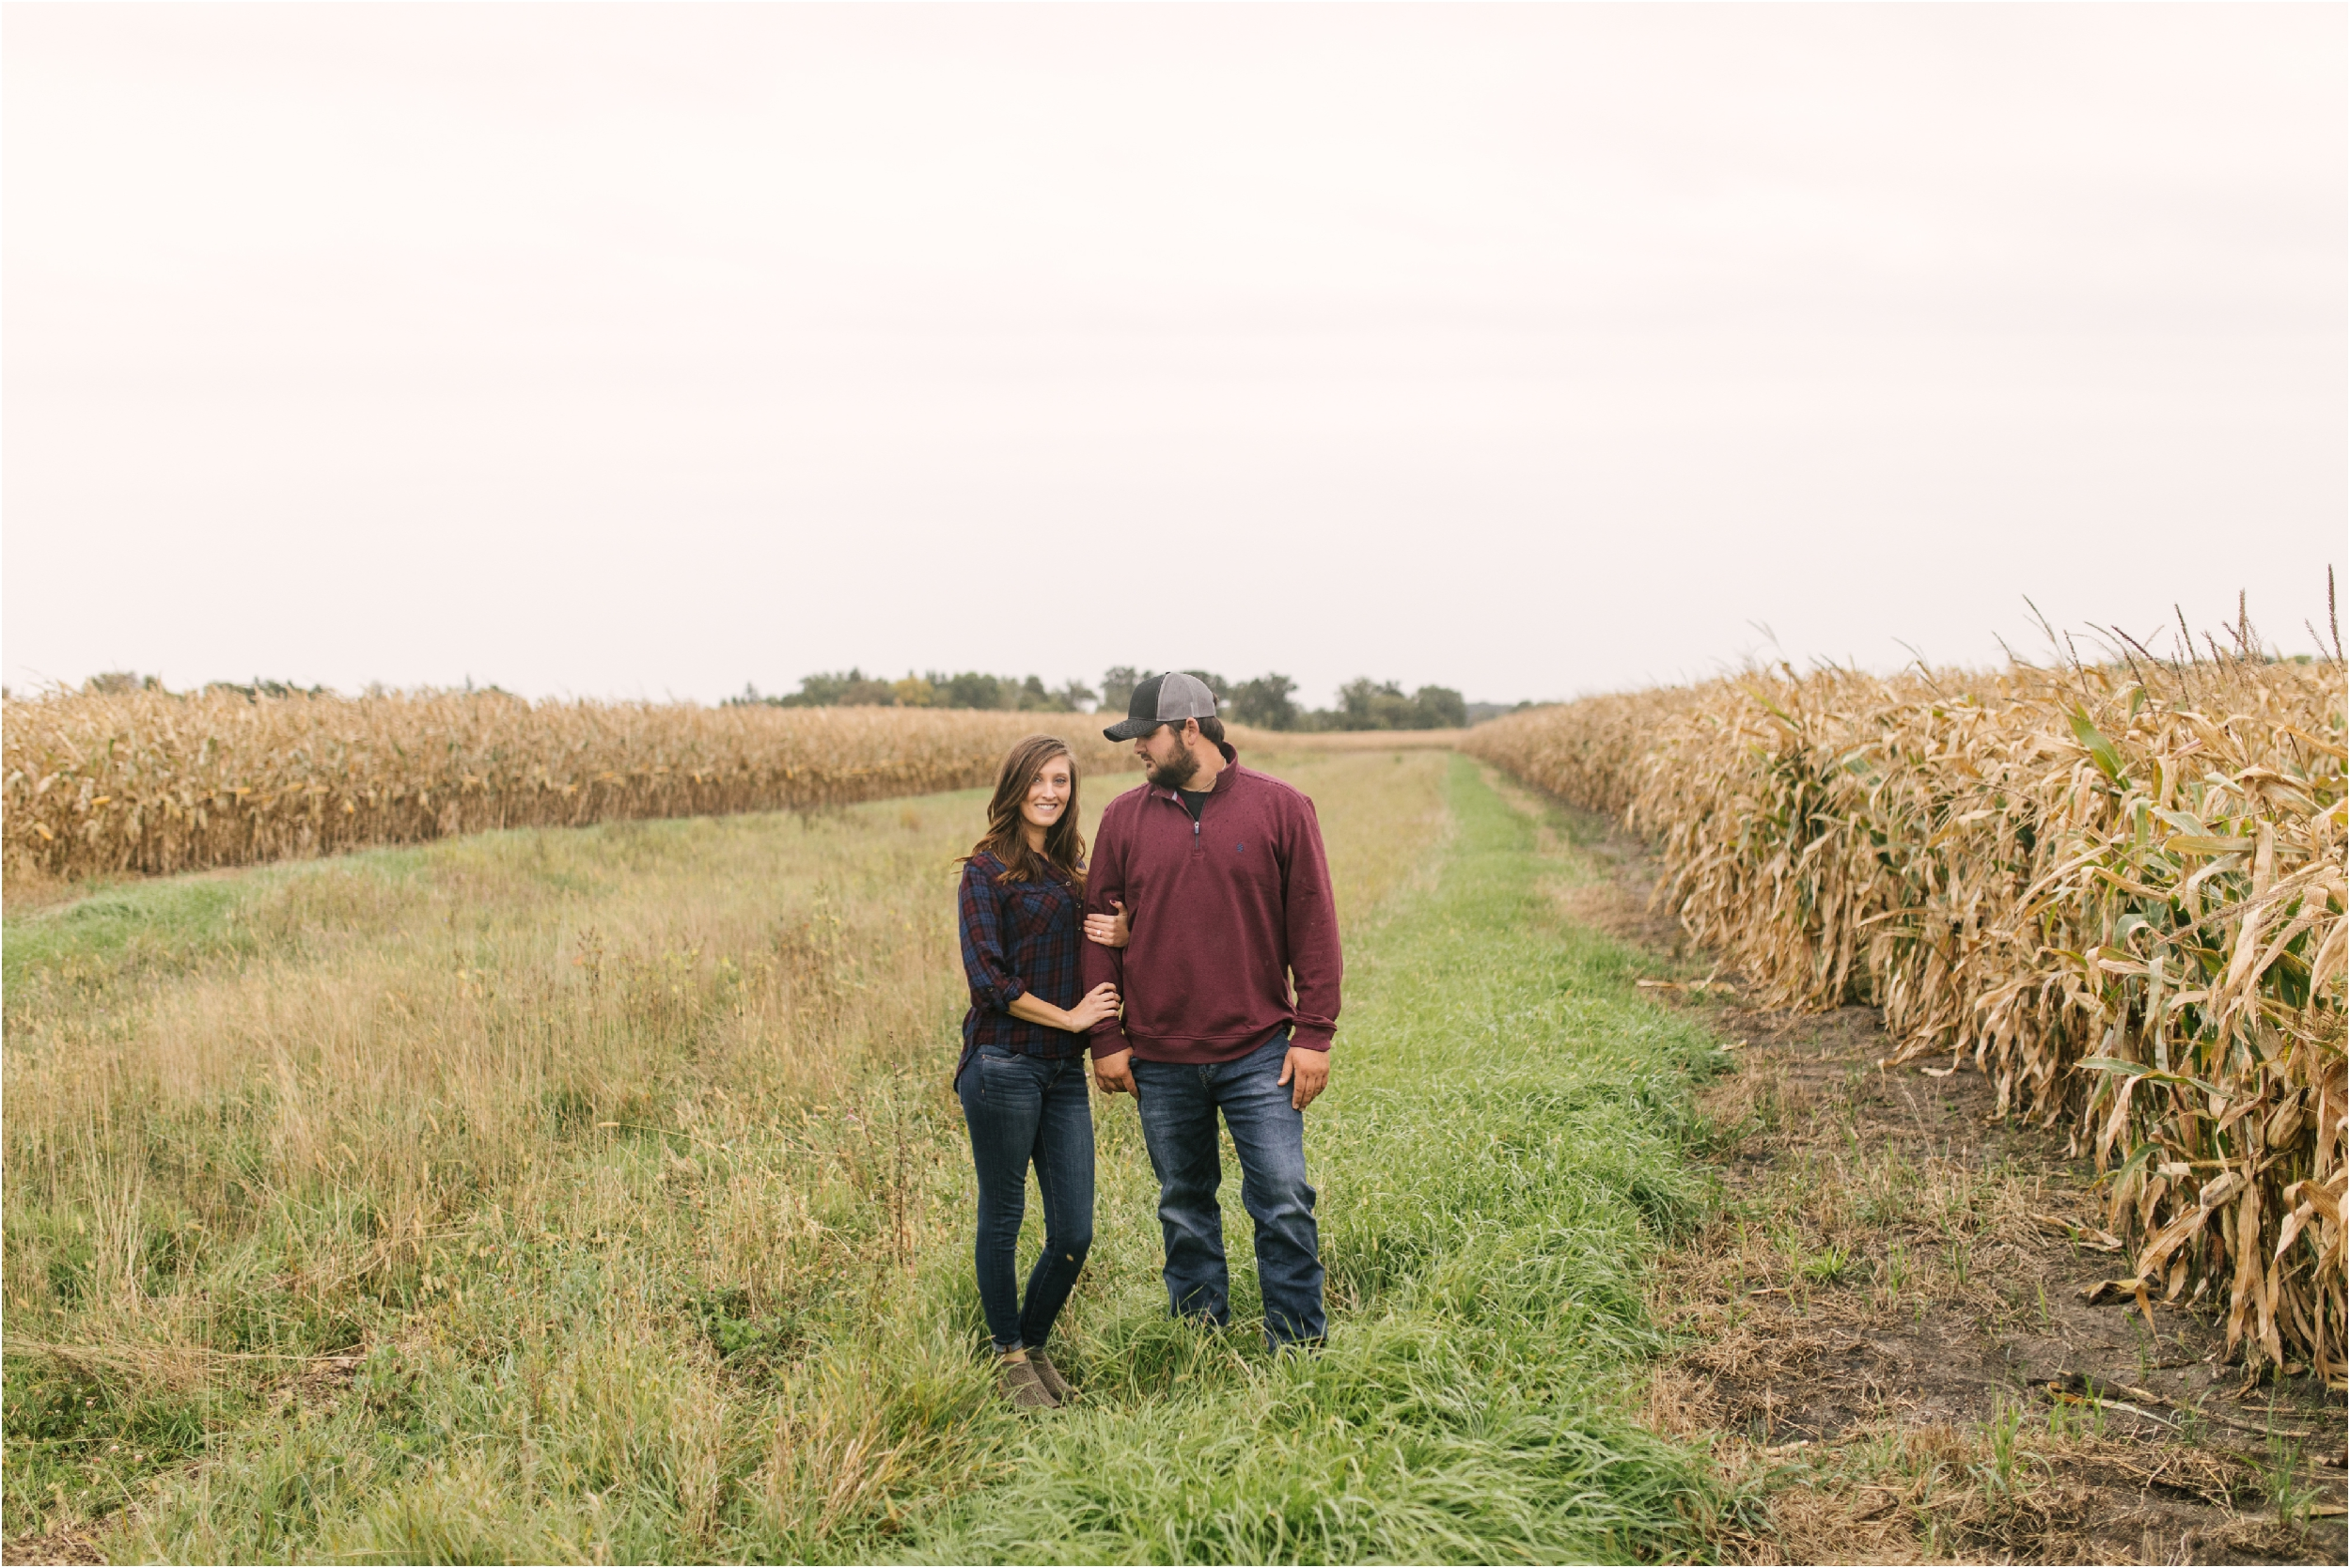 Countryside Engagement Photos_ Minnesota Wedding Photographer_Stephanie Lynn Photography_0069.jpg